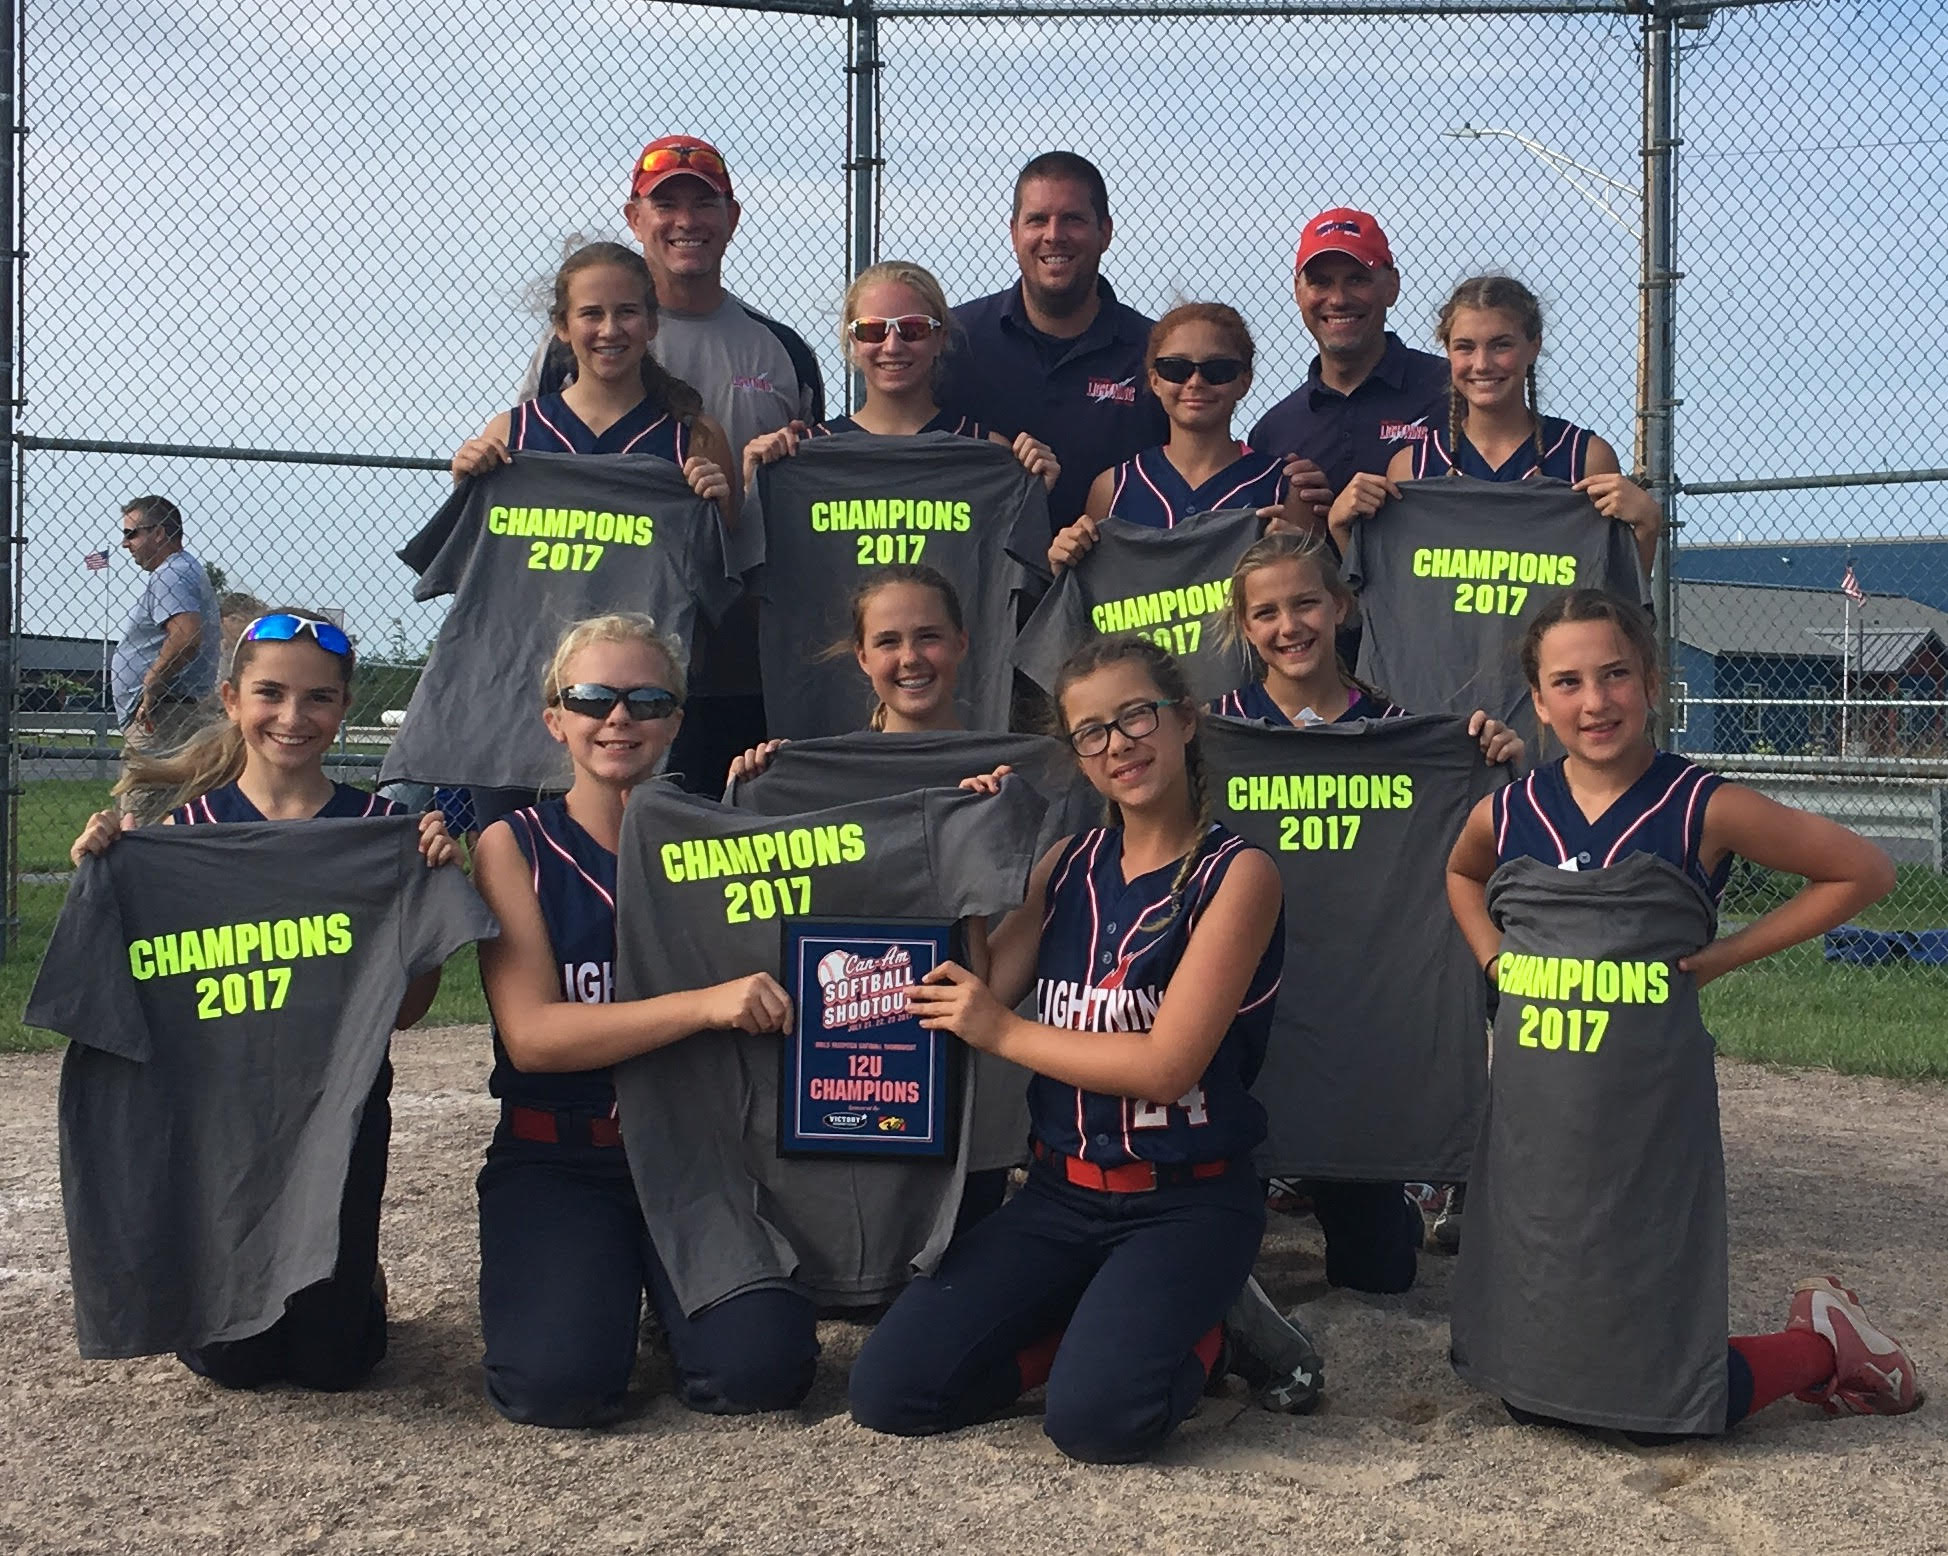 12U Wesolowski wins Can Am championship July 21-23